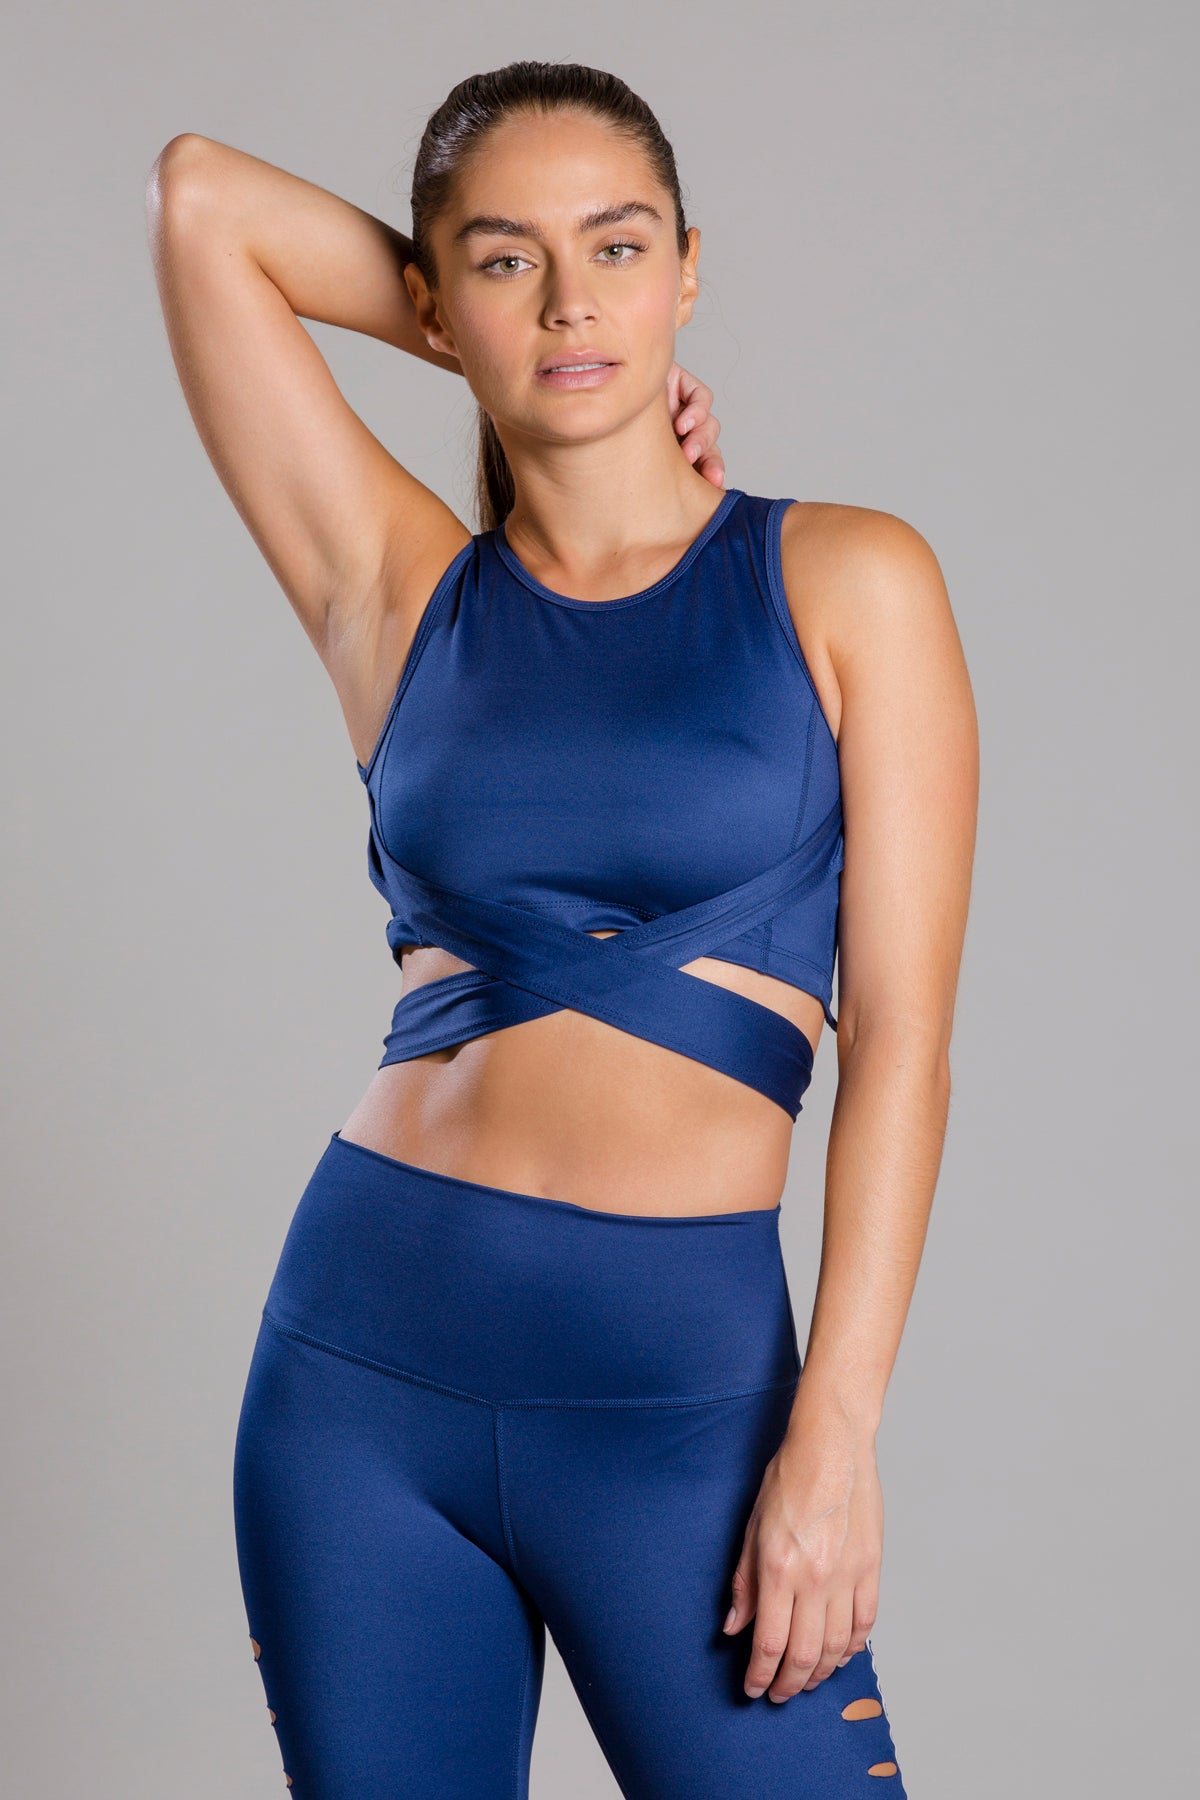 Rebeca Basic Blue Top For Cardio & Sculpt